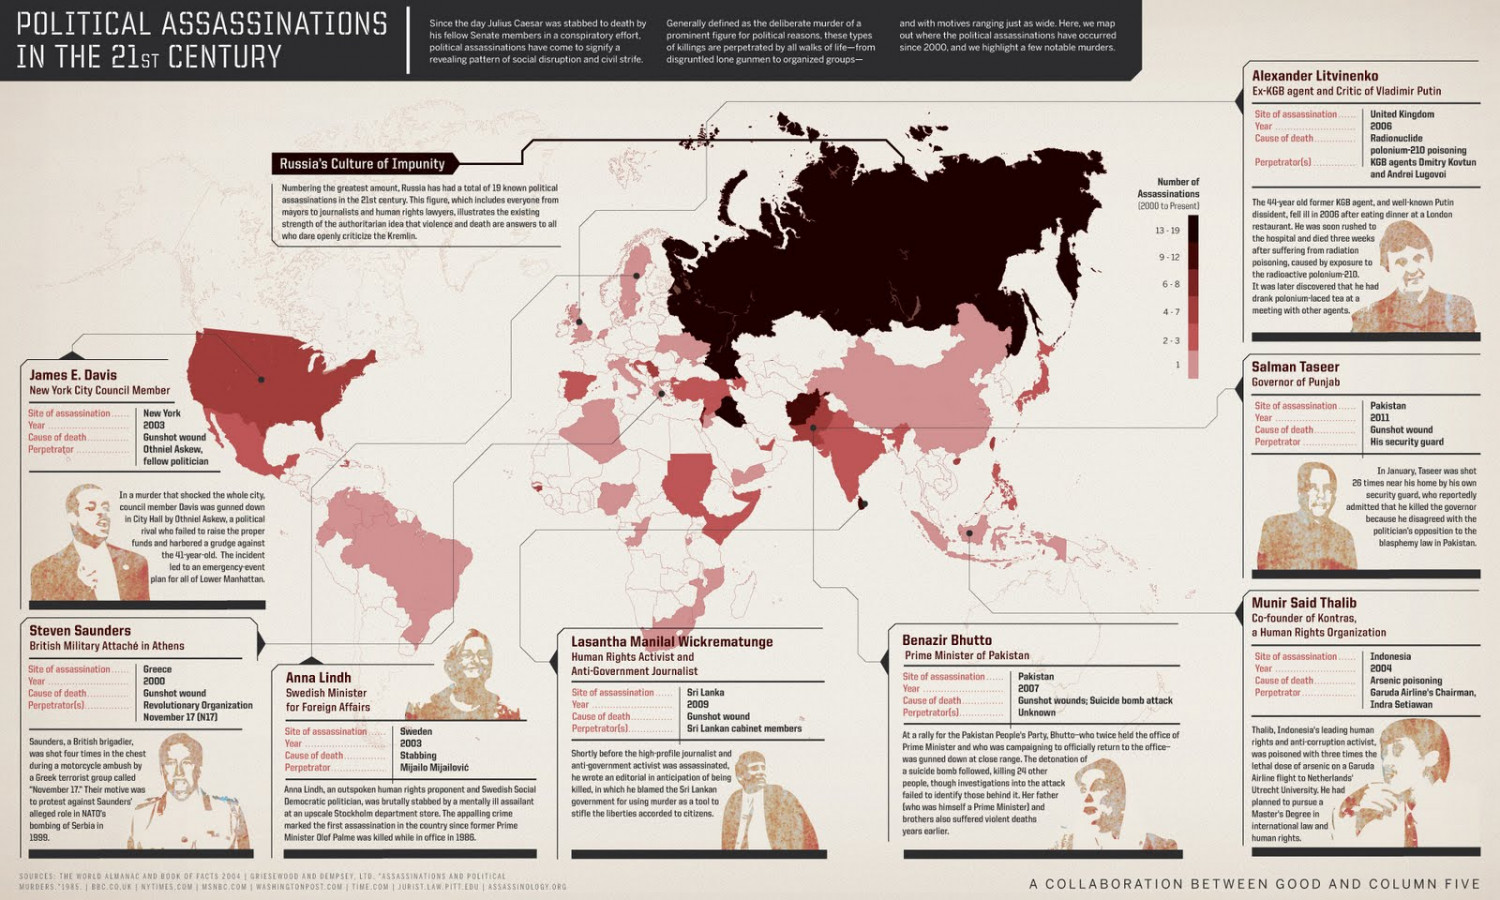 Political Assassinations in 21st Century Infographic